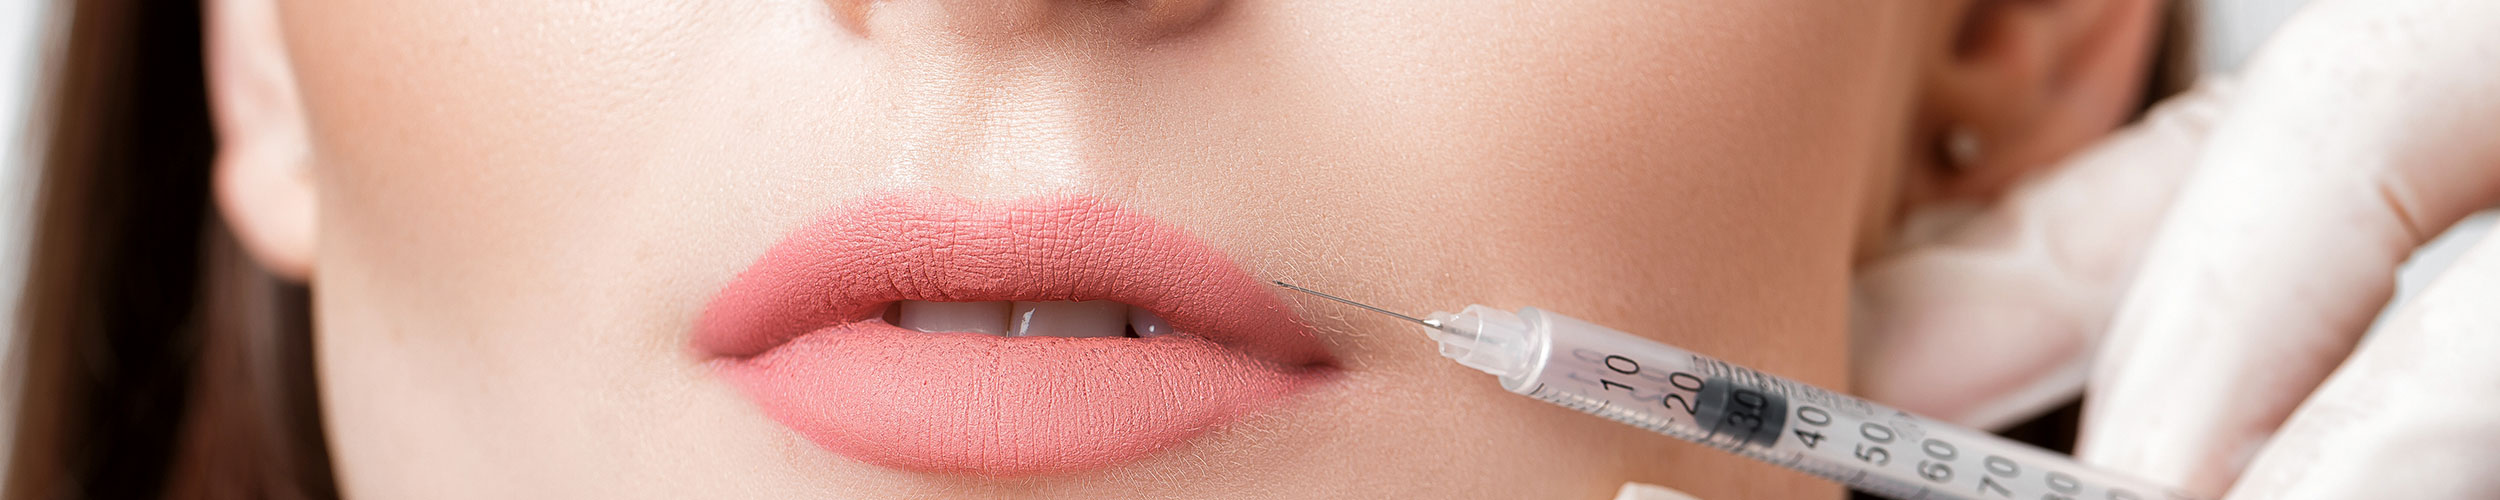 Non-Surgical Procedures - Victoria Dermal Filler Clinic